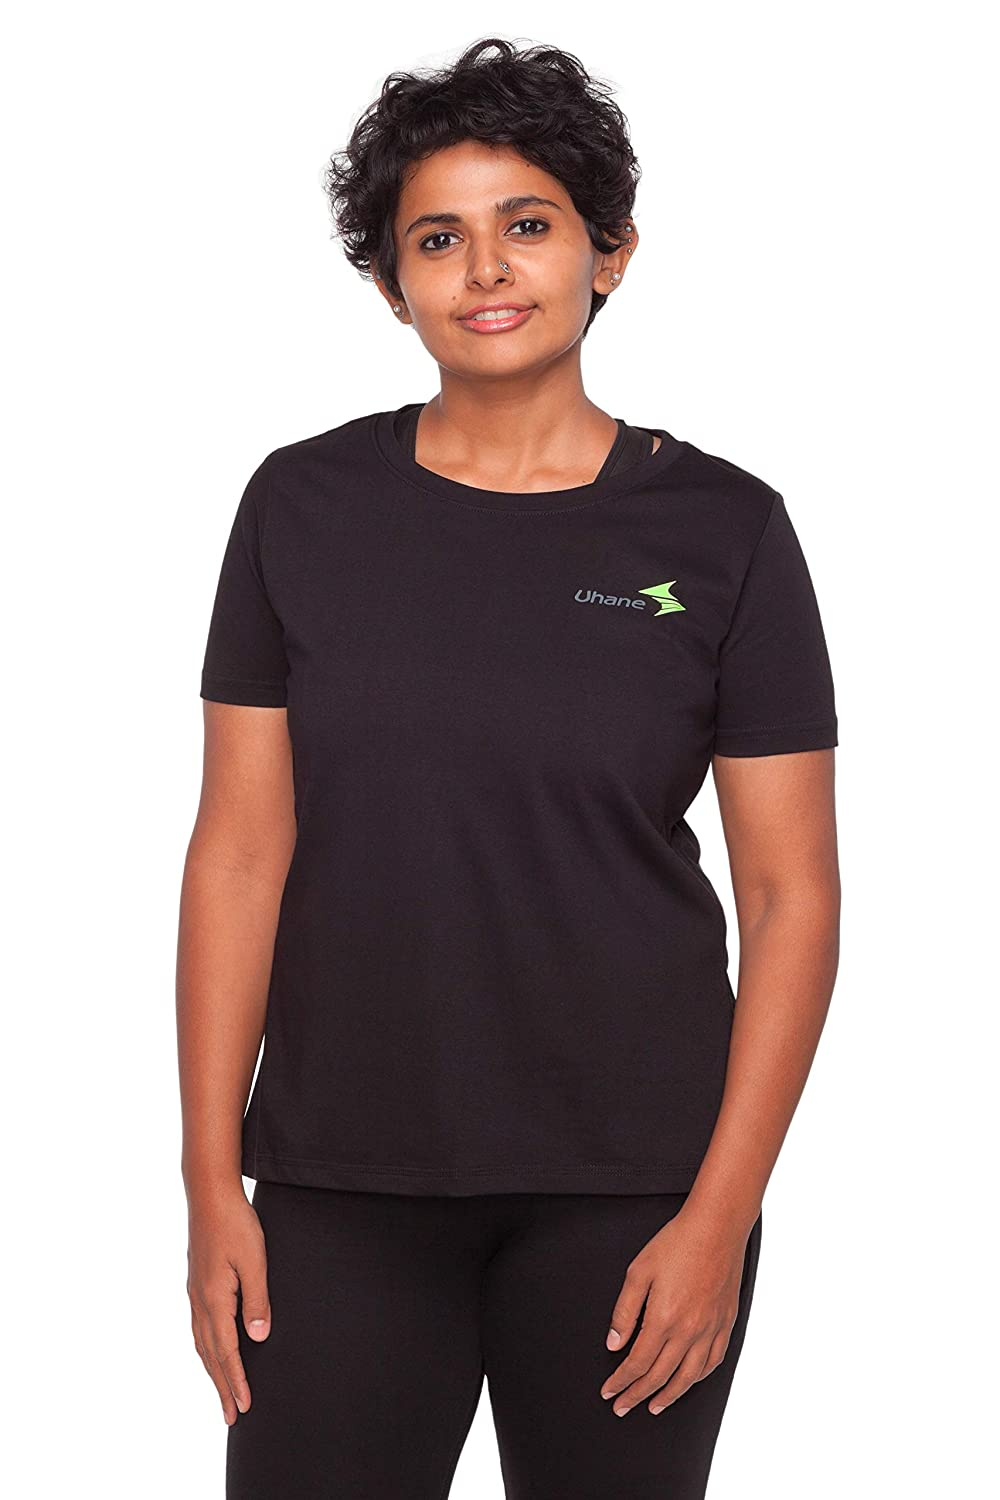 Uhane Women's Gym Dri-Fit Classic Work-Out Round Neck Loose Fit T-Shirt (Black) Short Sleeves